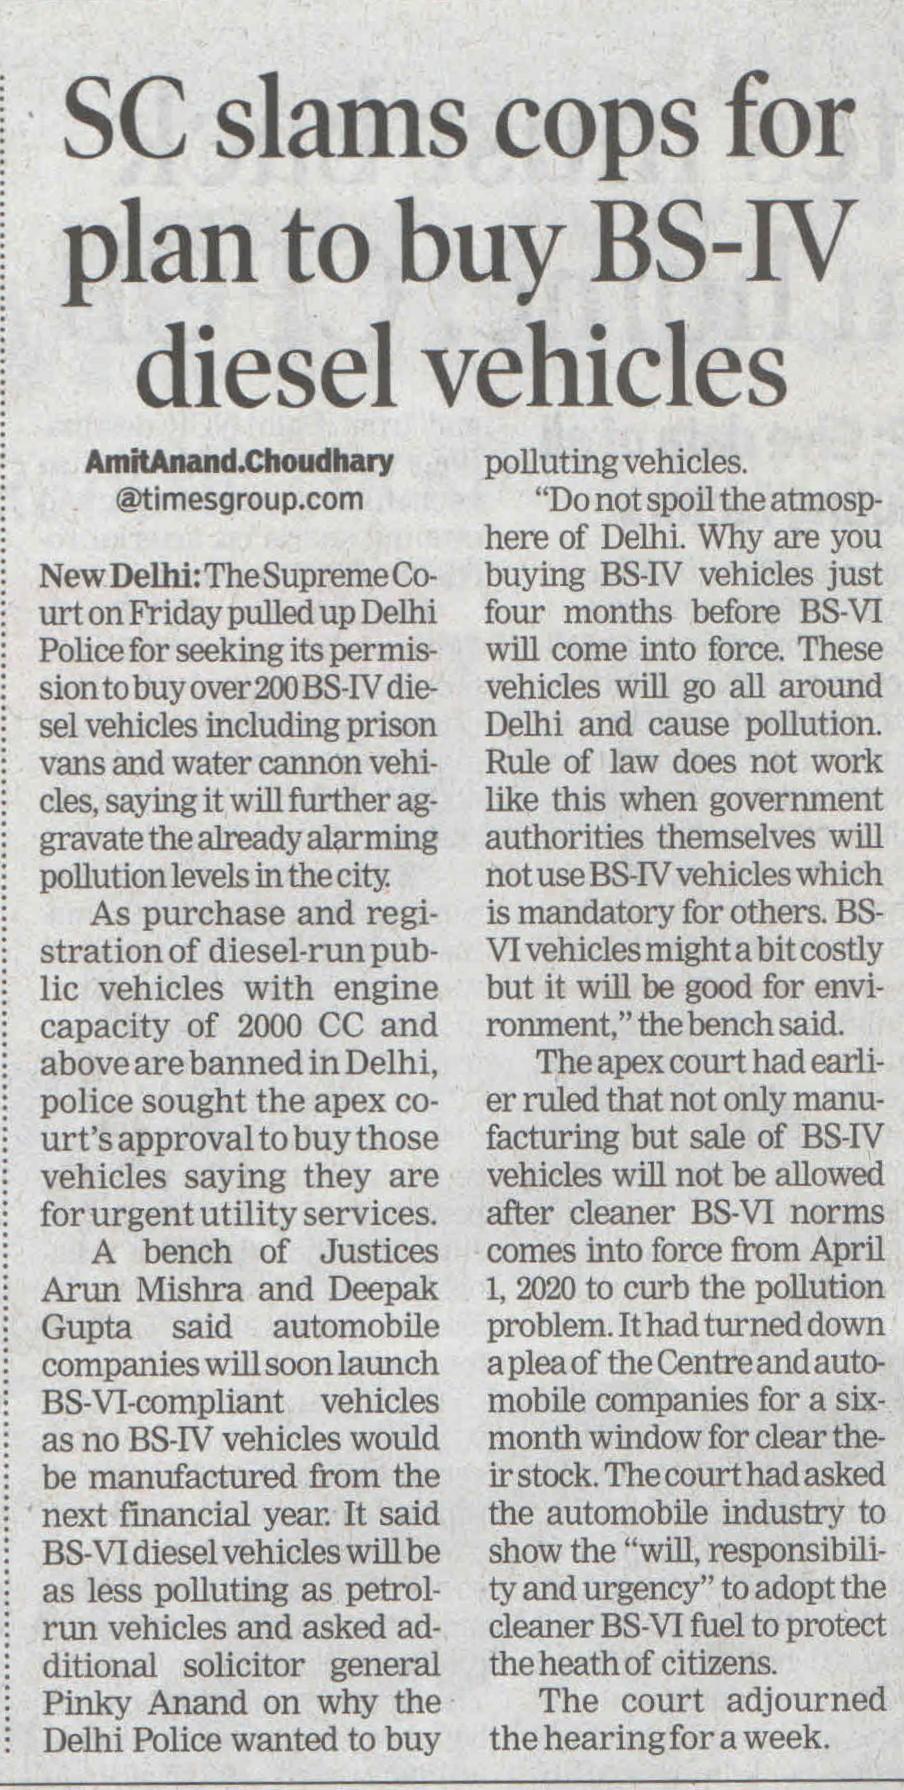 SC slams cops for plan to buy BS-IV DIESEL VEHICLES